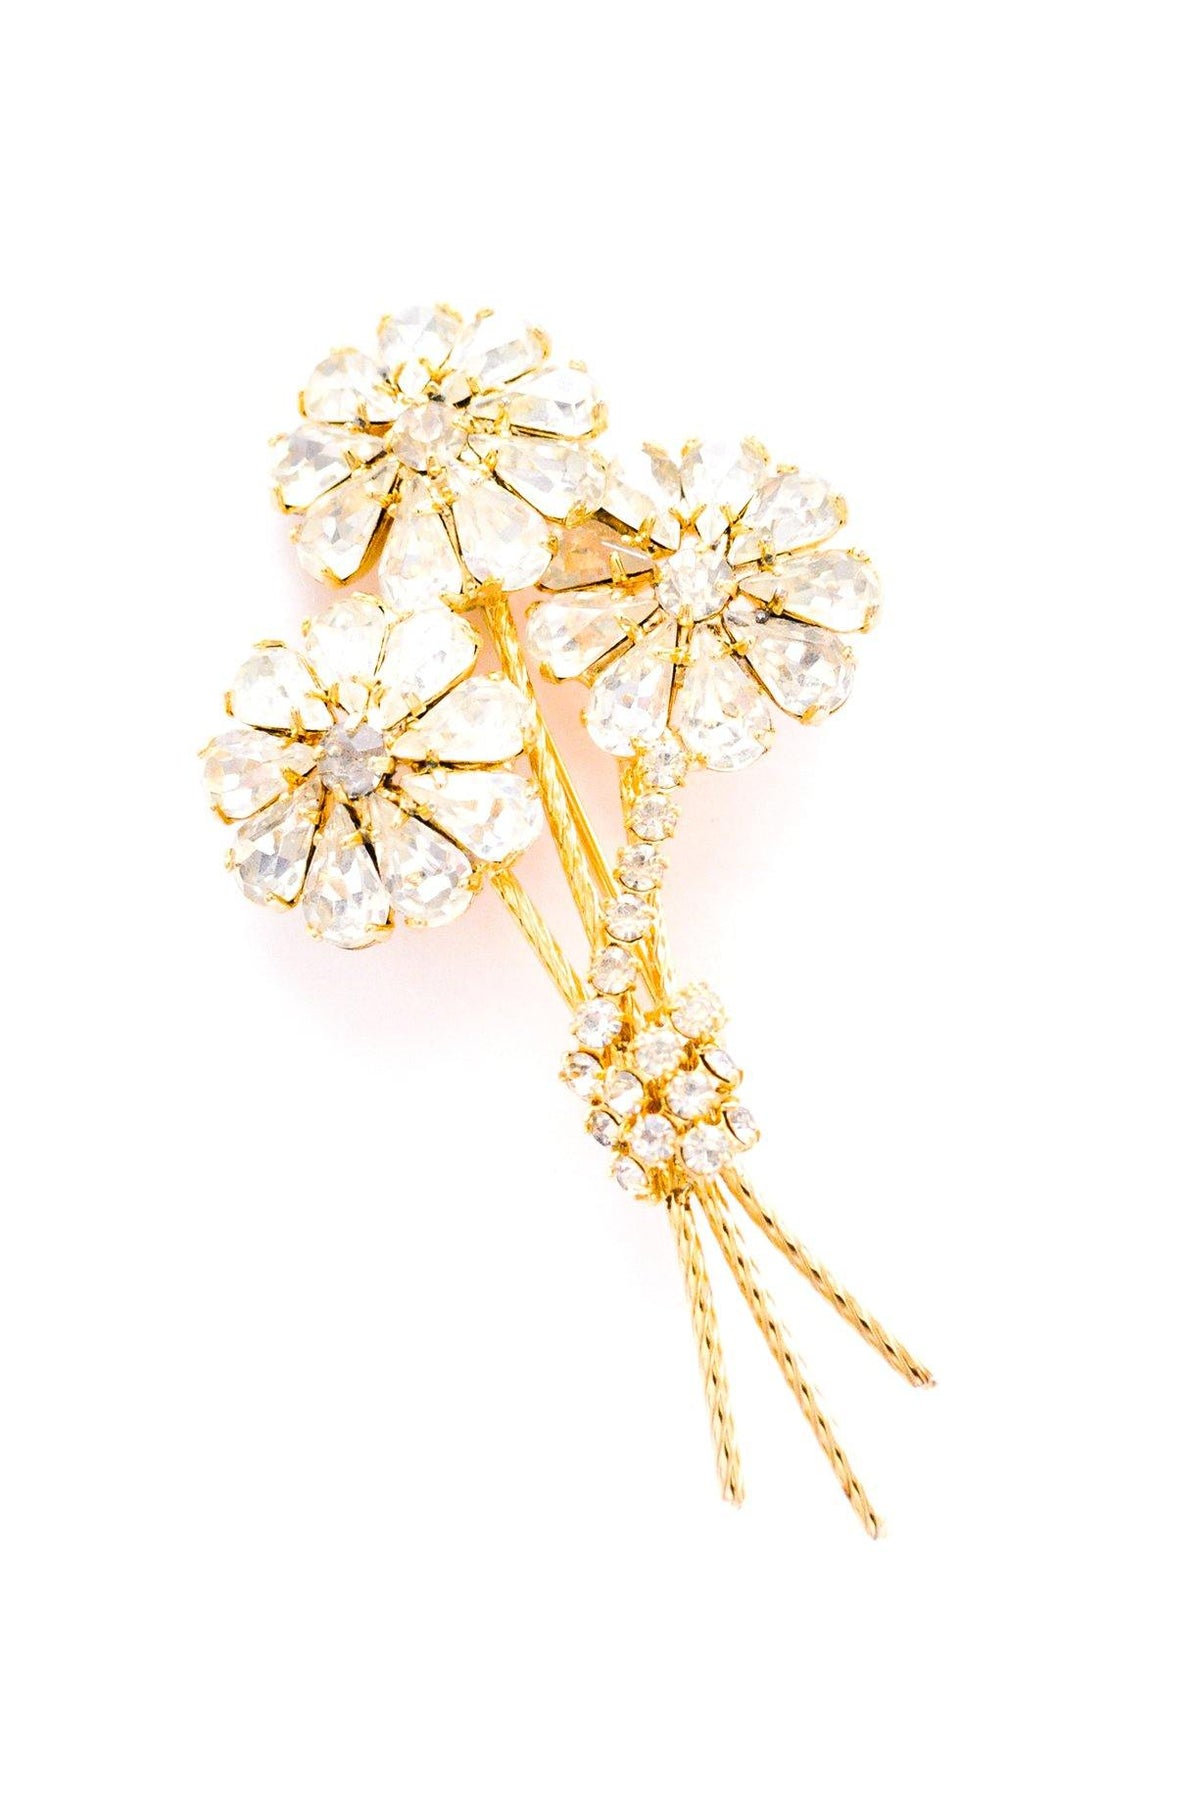 Vintage rhinestone stem brooch from Sweet & Spark.